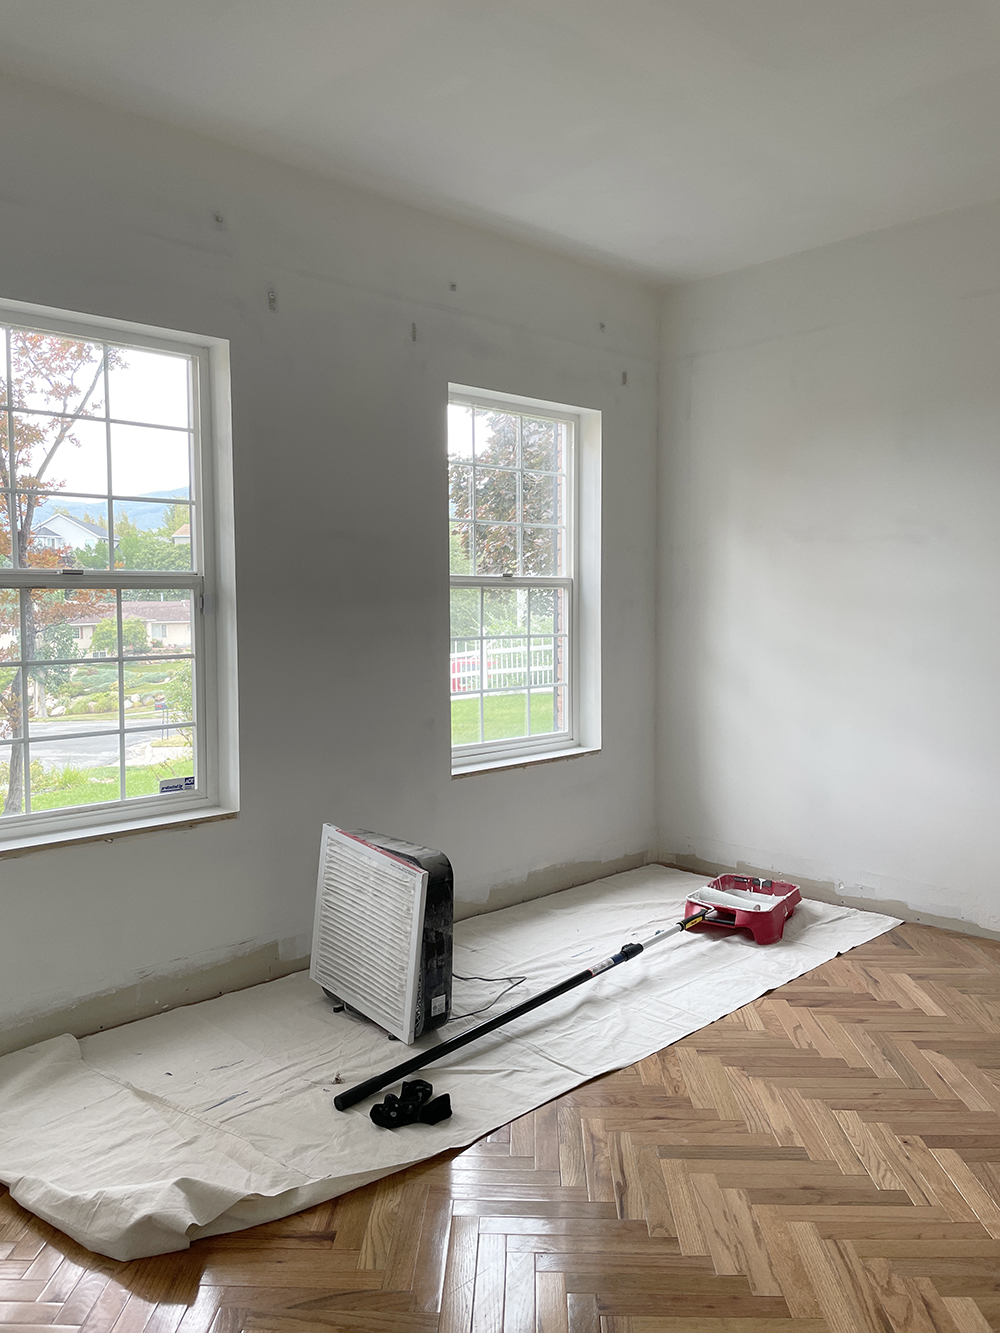 Office Renovation Update (Paint) - roomfortuesday.com